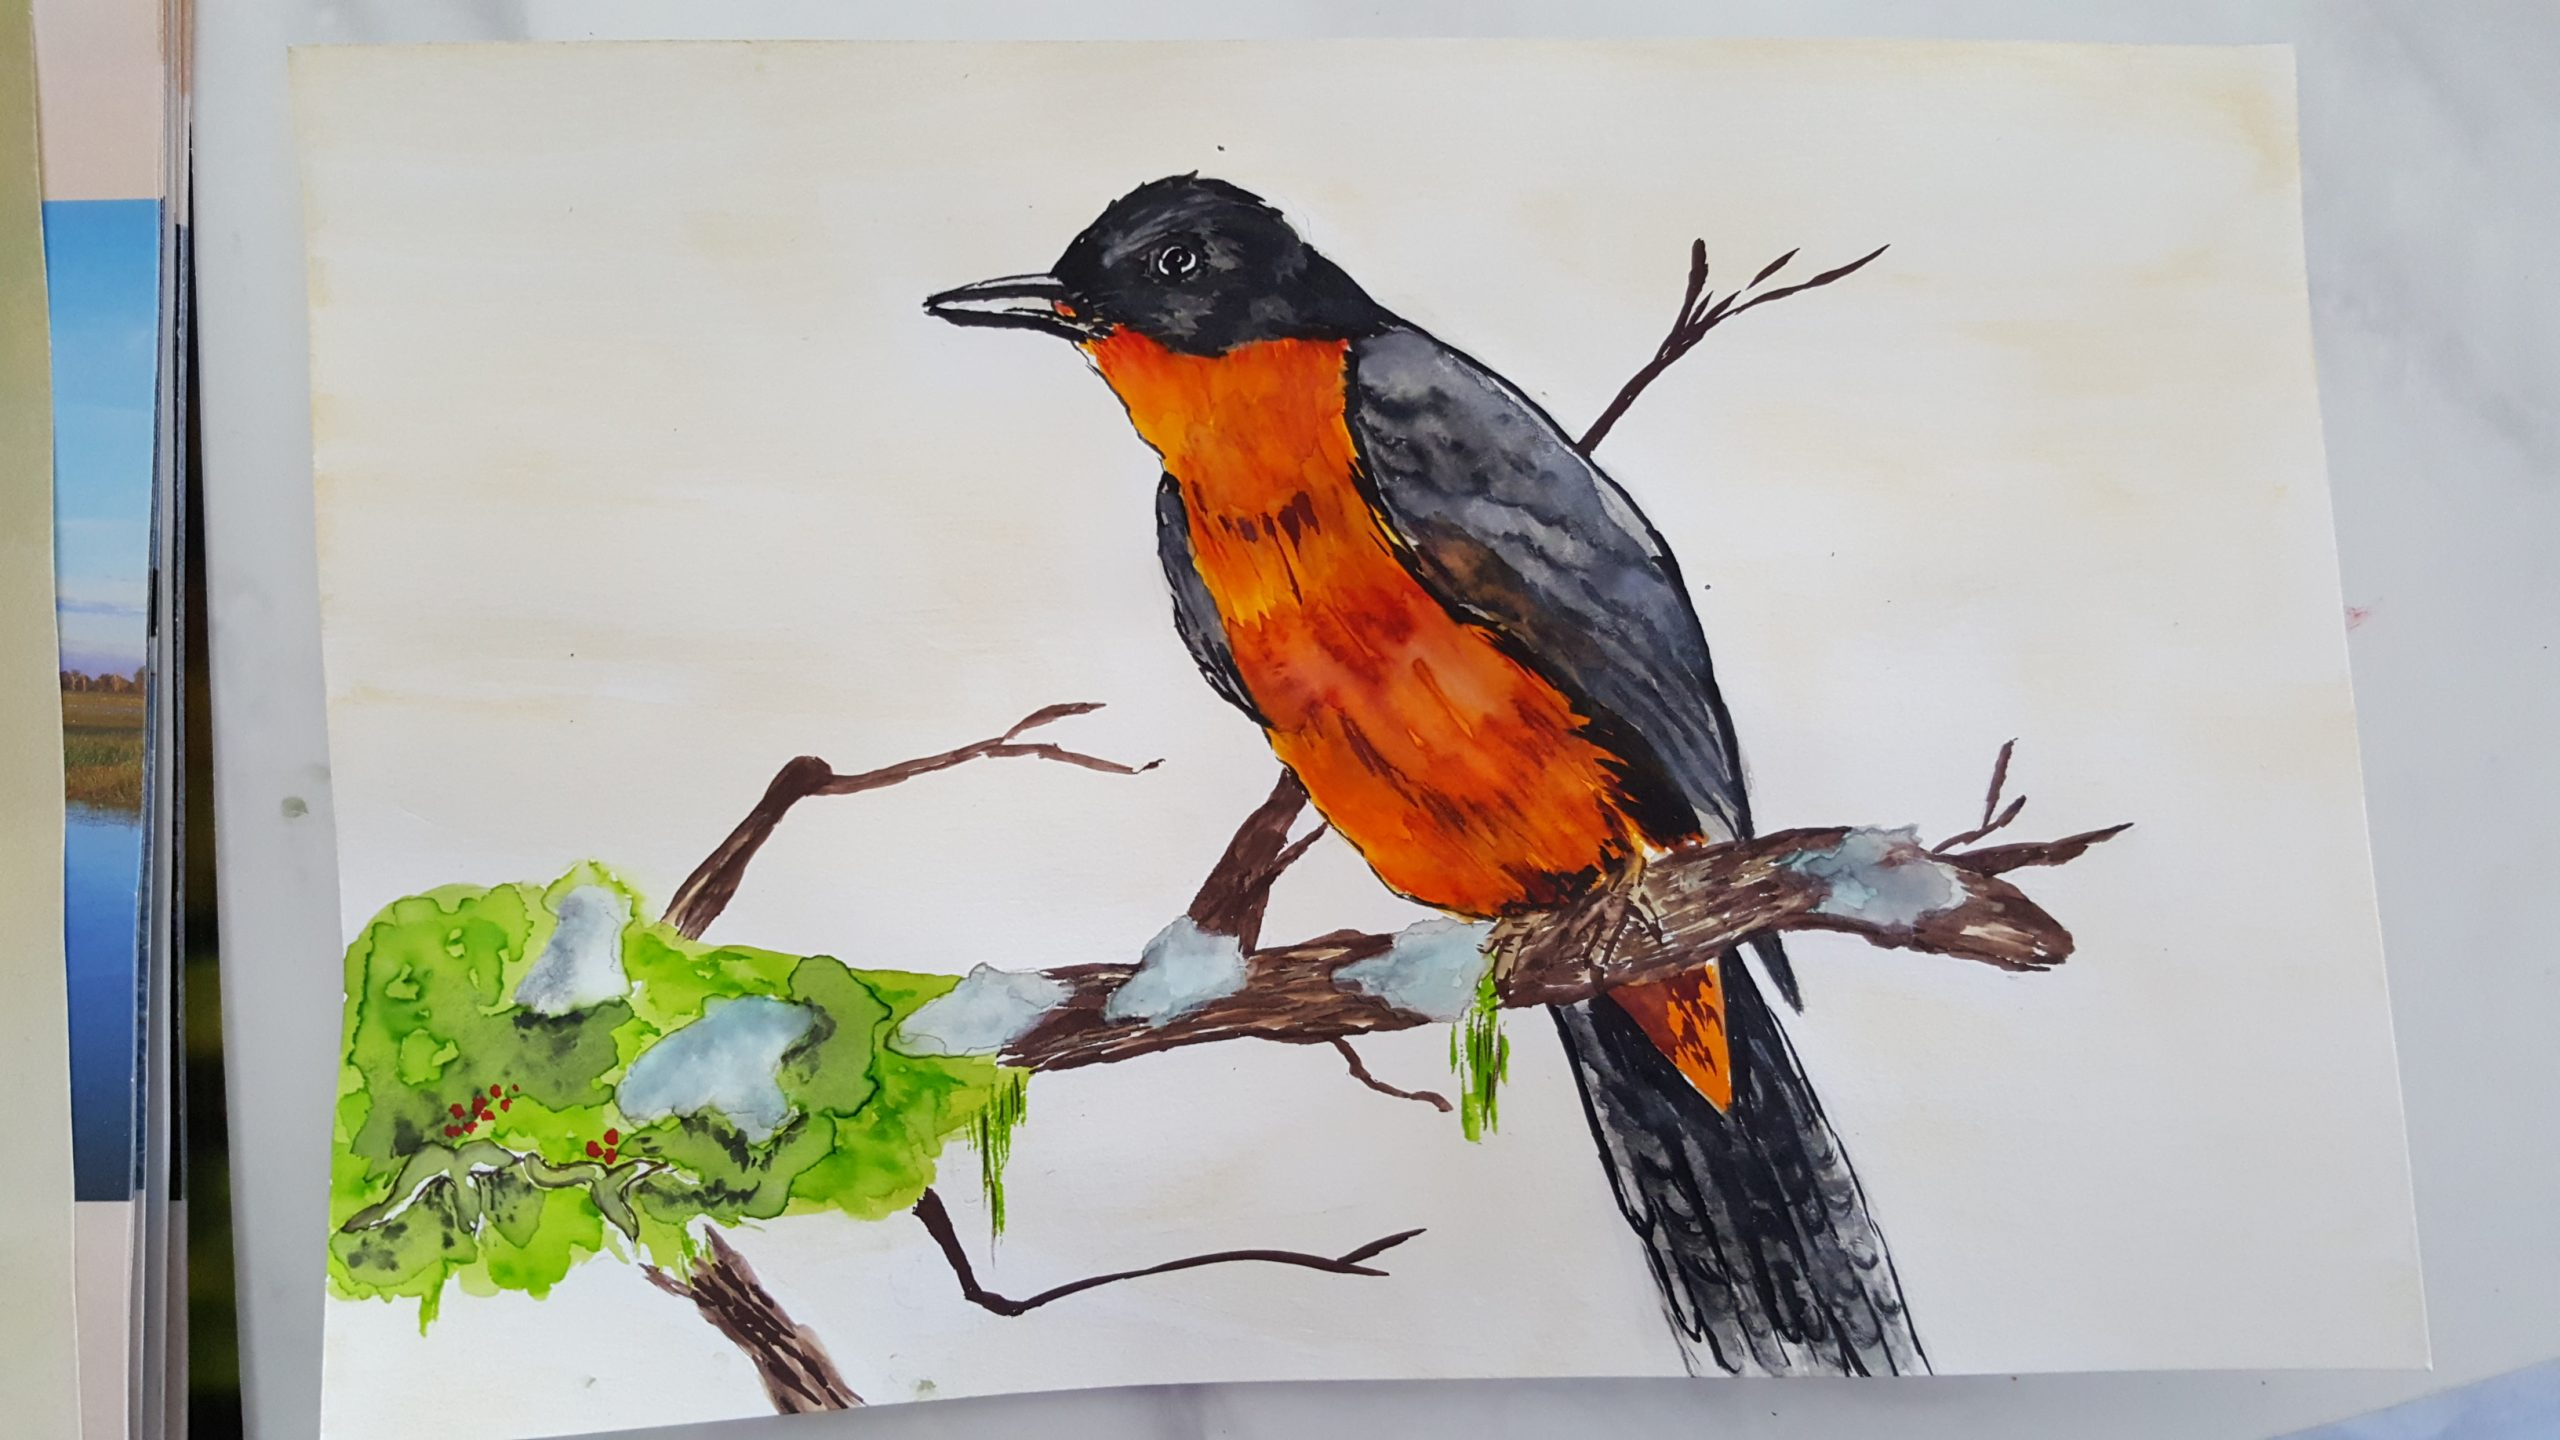 a watercolour painting of a bird perched on a branch with a deep orange chest and black outer feathers.